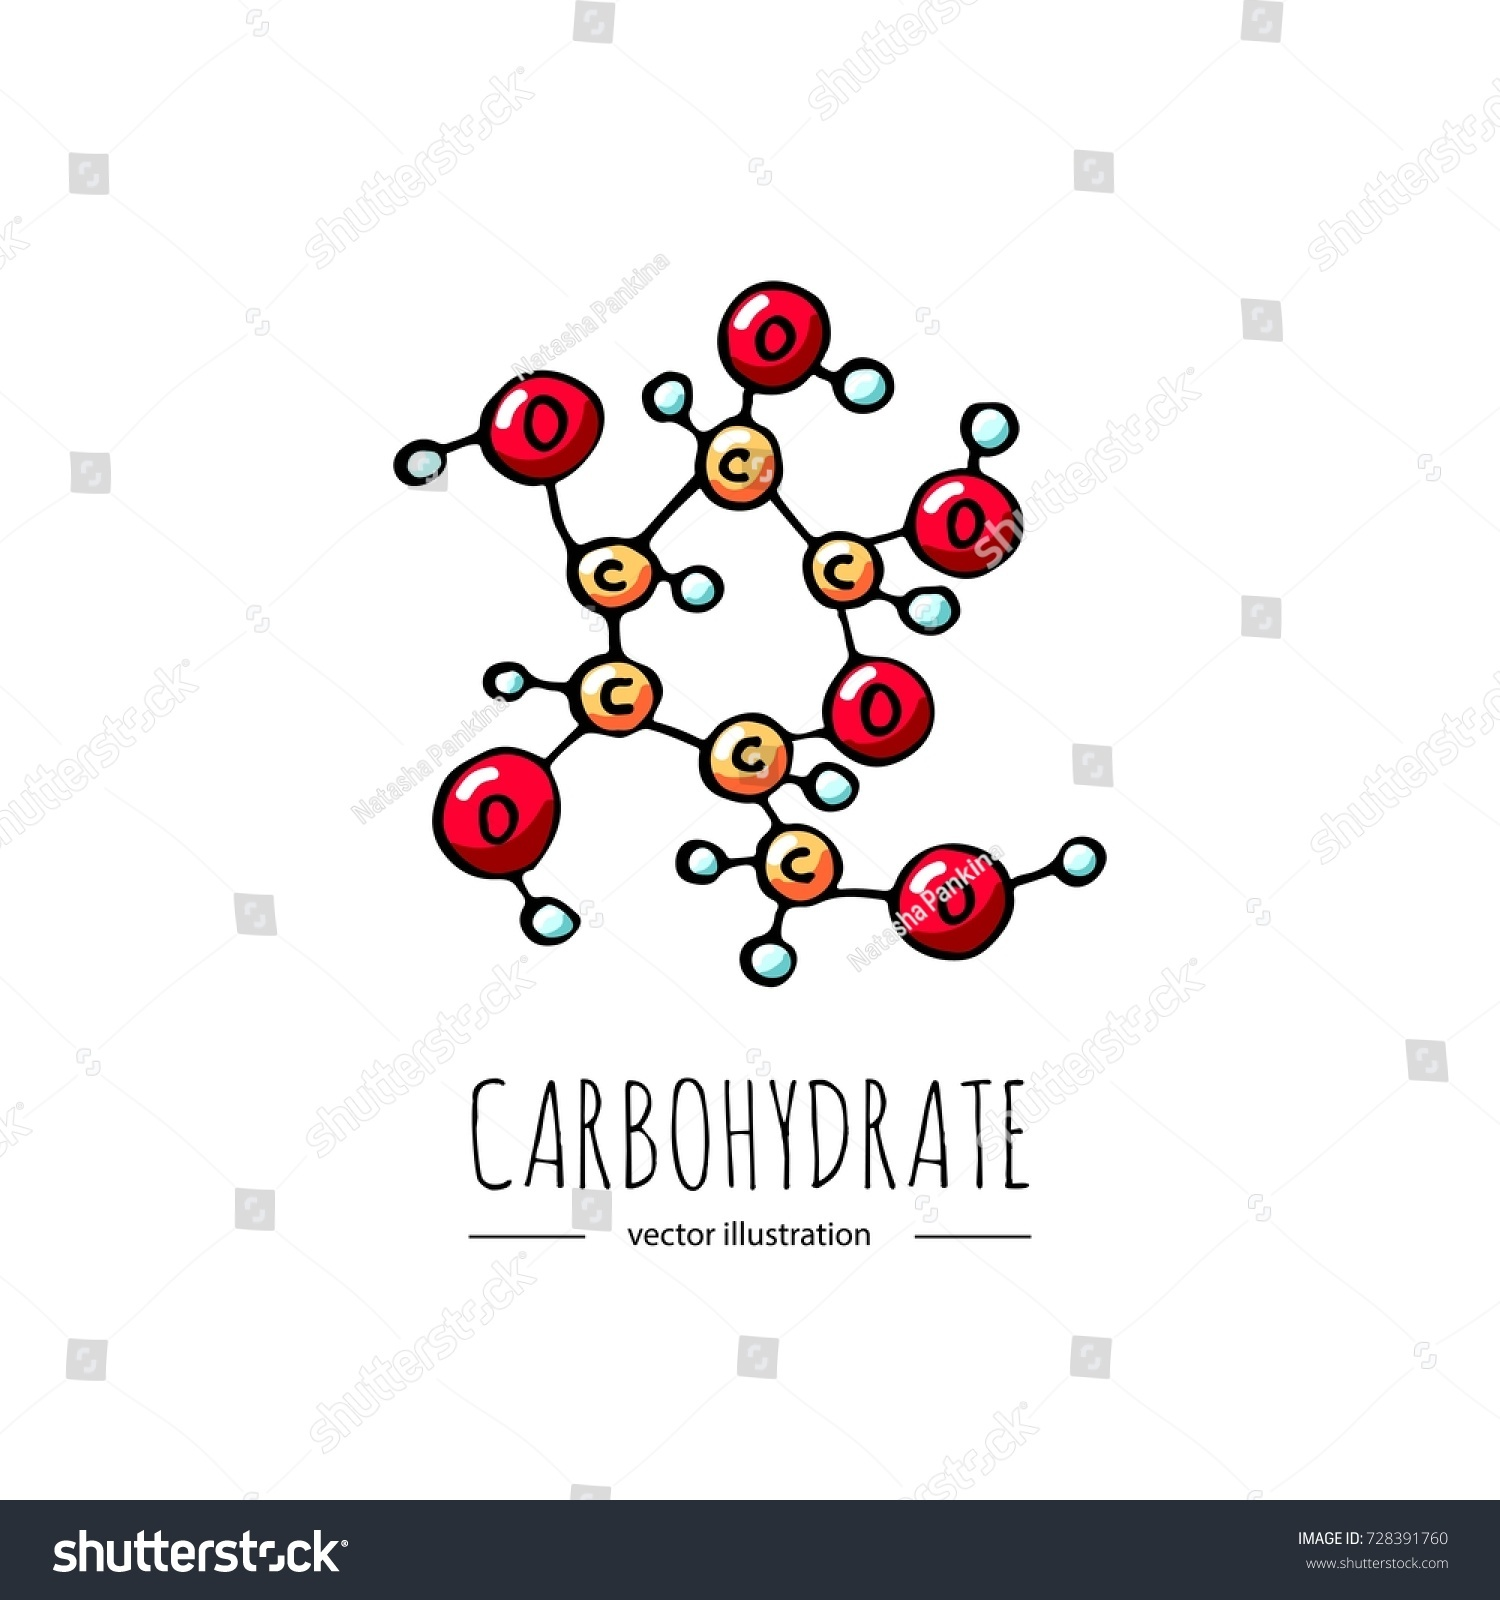 Hand drawn doodle carbohydrate chemical formula stock vector hand drawn doodle carbohydrate chemical formula icon vector illustration carbs dieting symbol cartoon sketch weight loss publicscrutiny